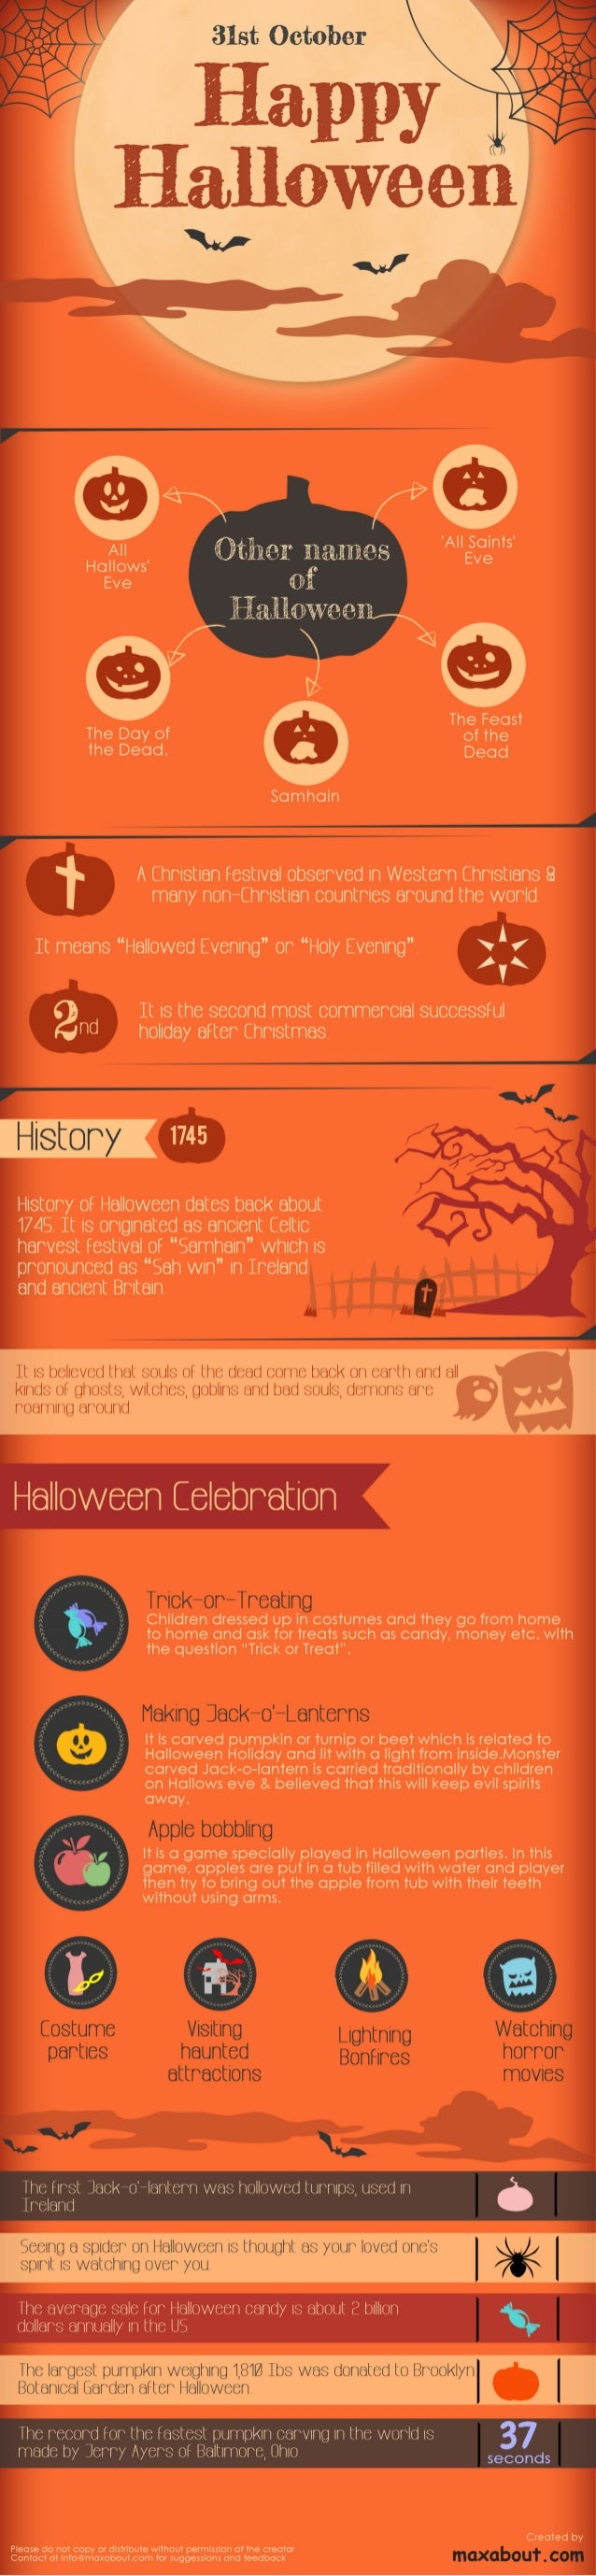 Interesting Facts About Halloween!